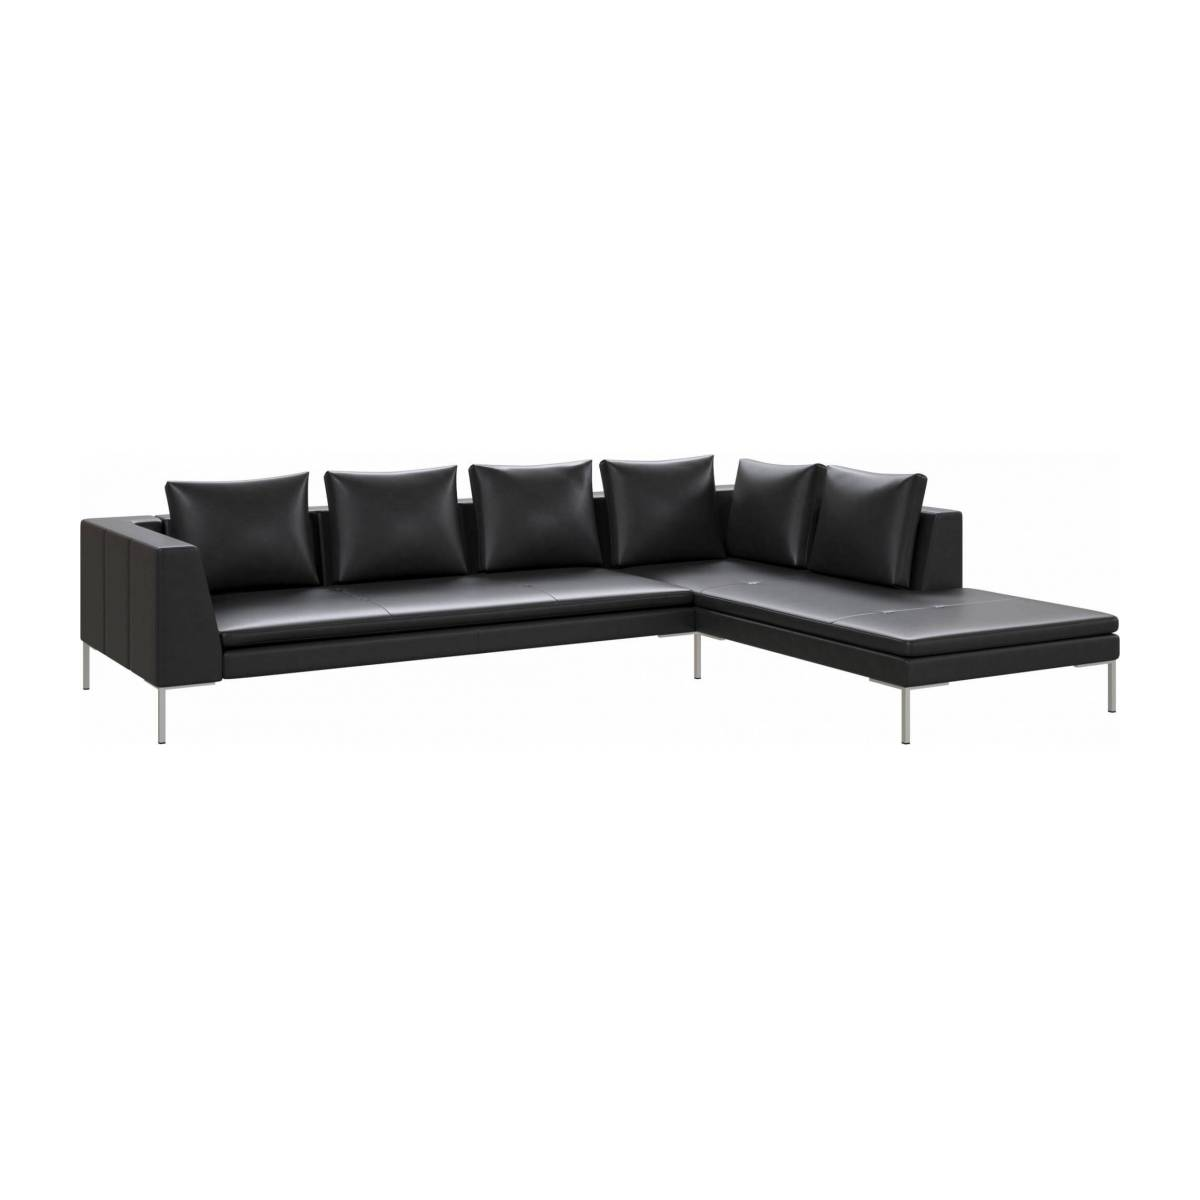 3 seater sofa with chaise longue on the right in Savoy semi-aniline leather, platin black  n°2